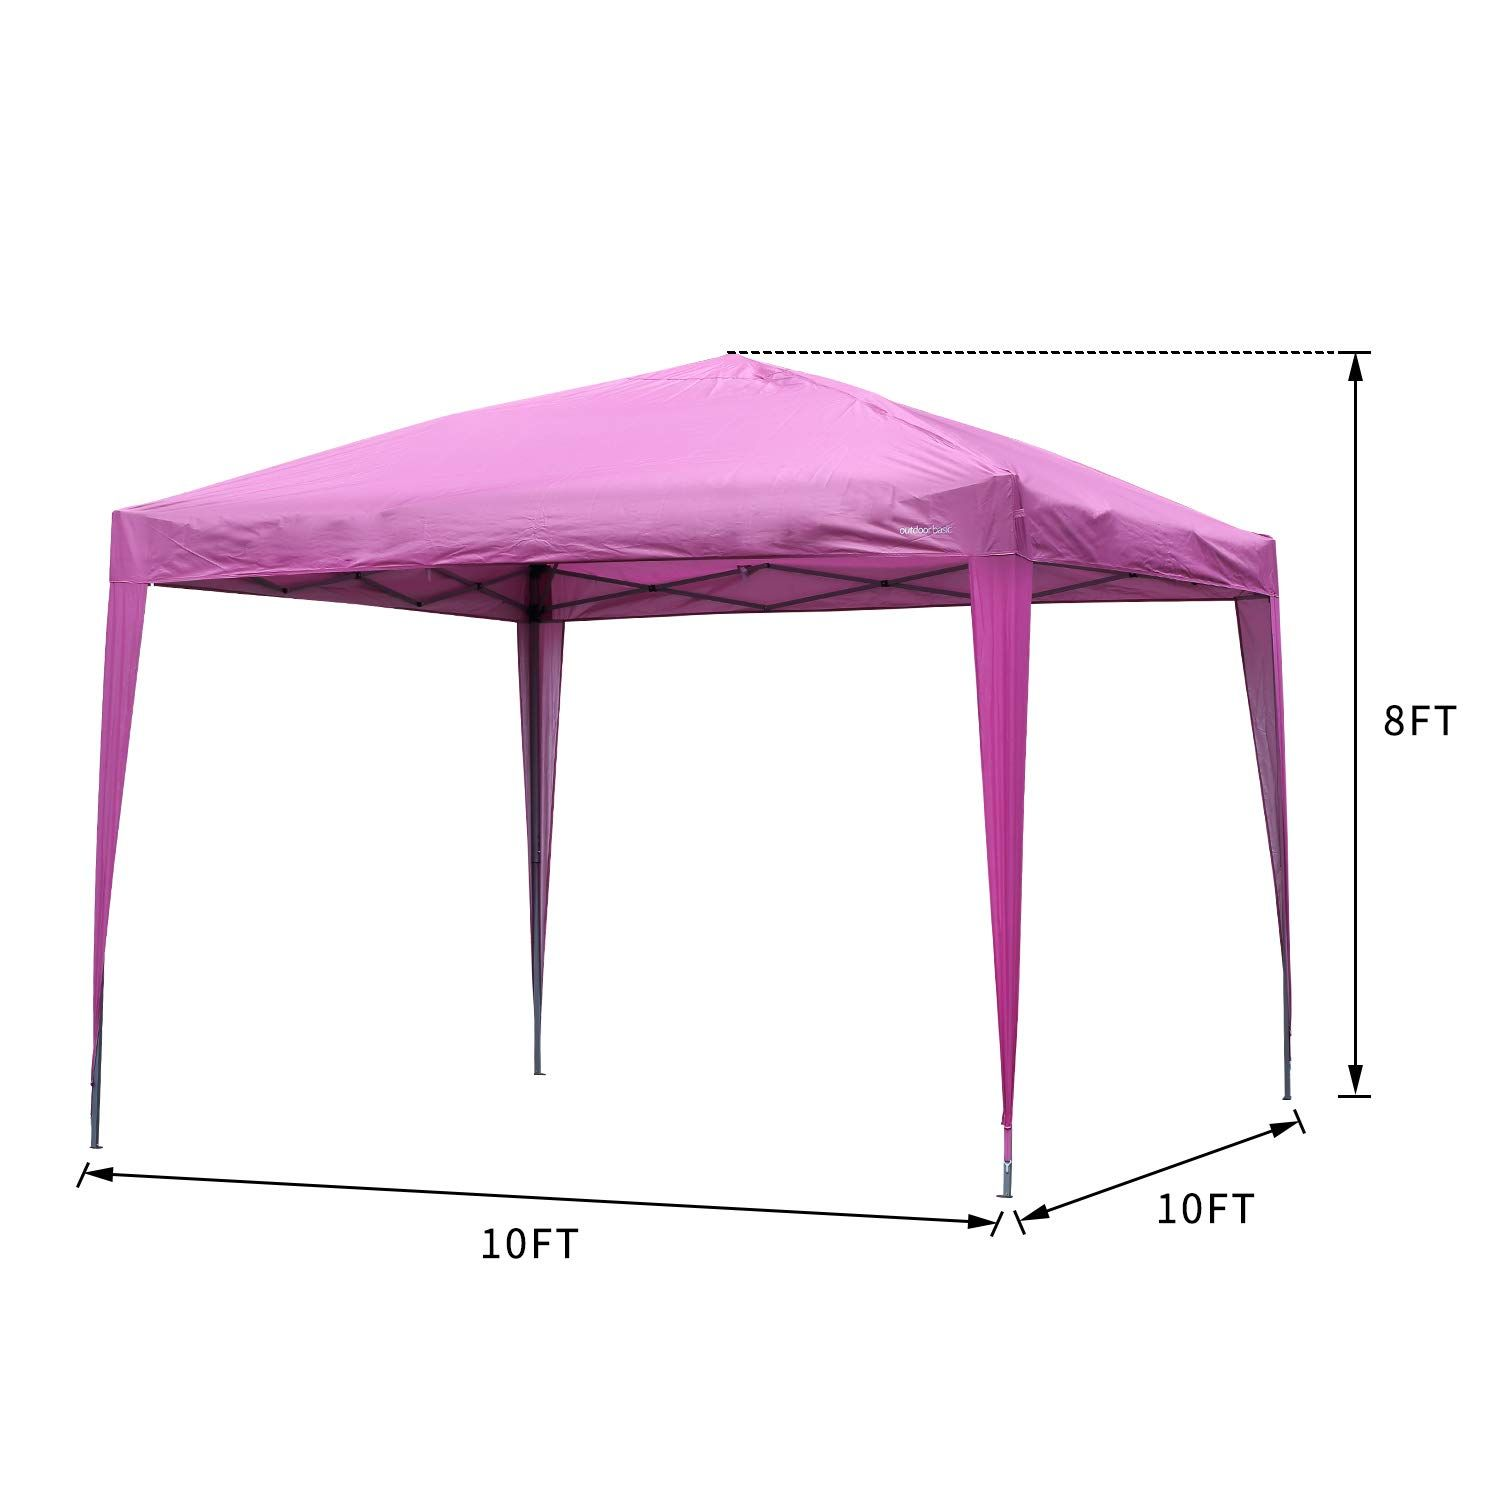 Outdoor Basic 10 10 Pop Up Canopy Party Tent Instant Gazebos With 4 Removable Sidewalls Pink In 2020 Party Tent Gazebo Canopy